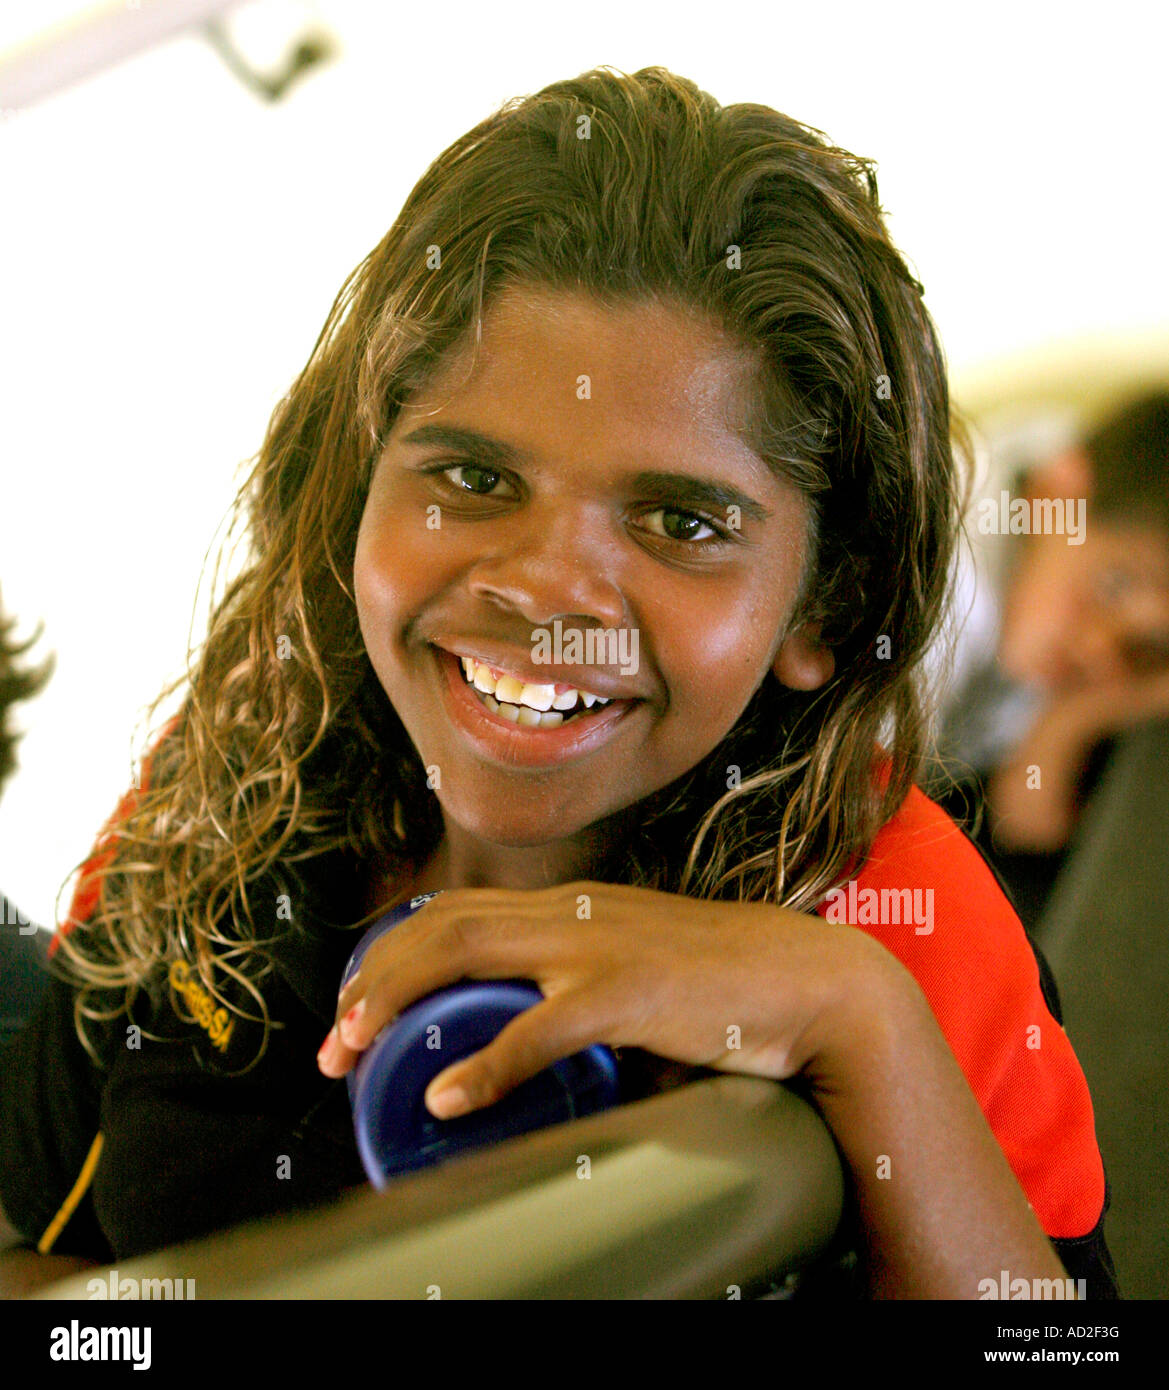 [Image: a-beautiful-smiling-young-aboriginal-girl-AD2F3G.jpg]